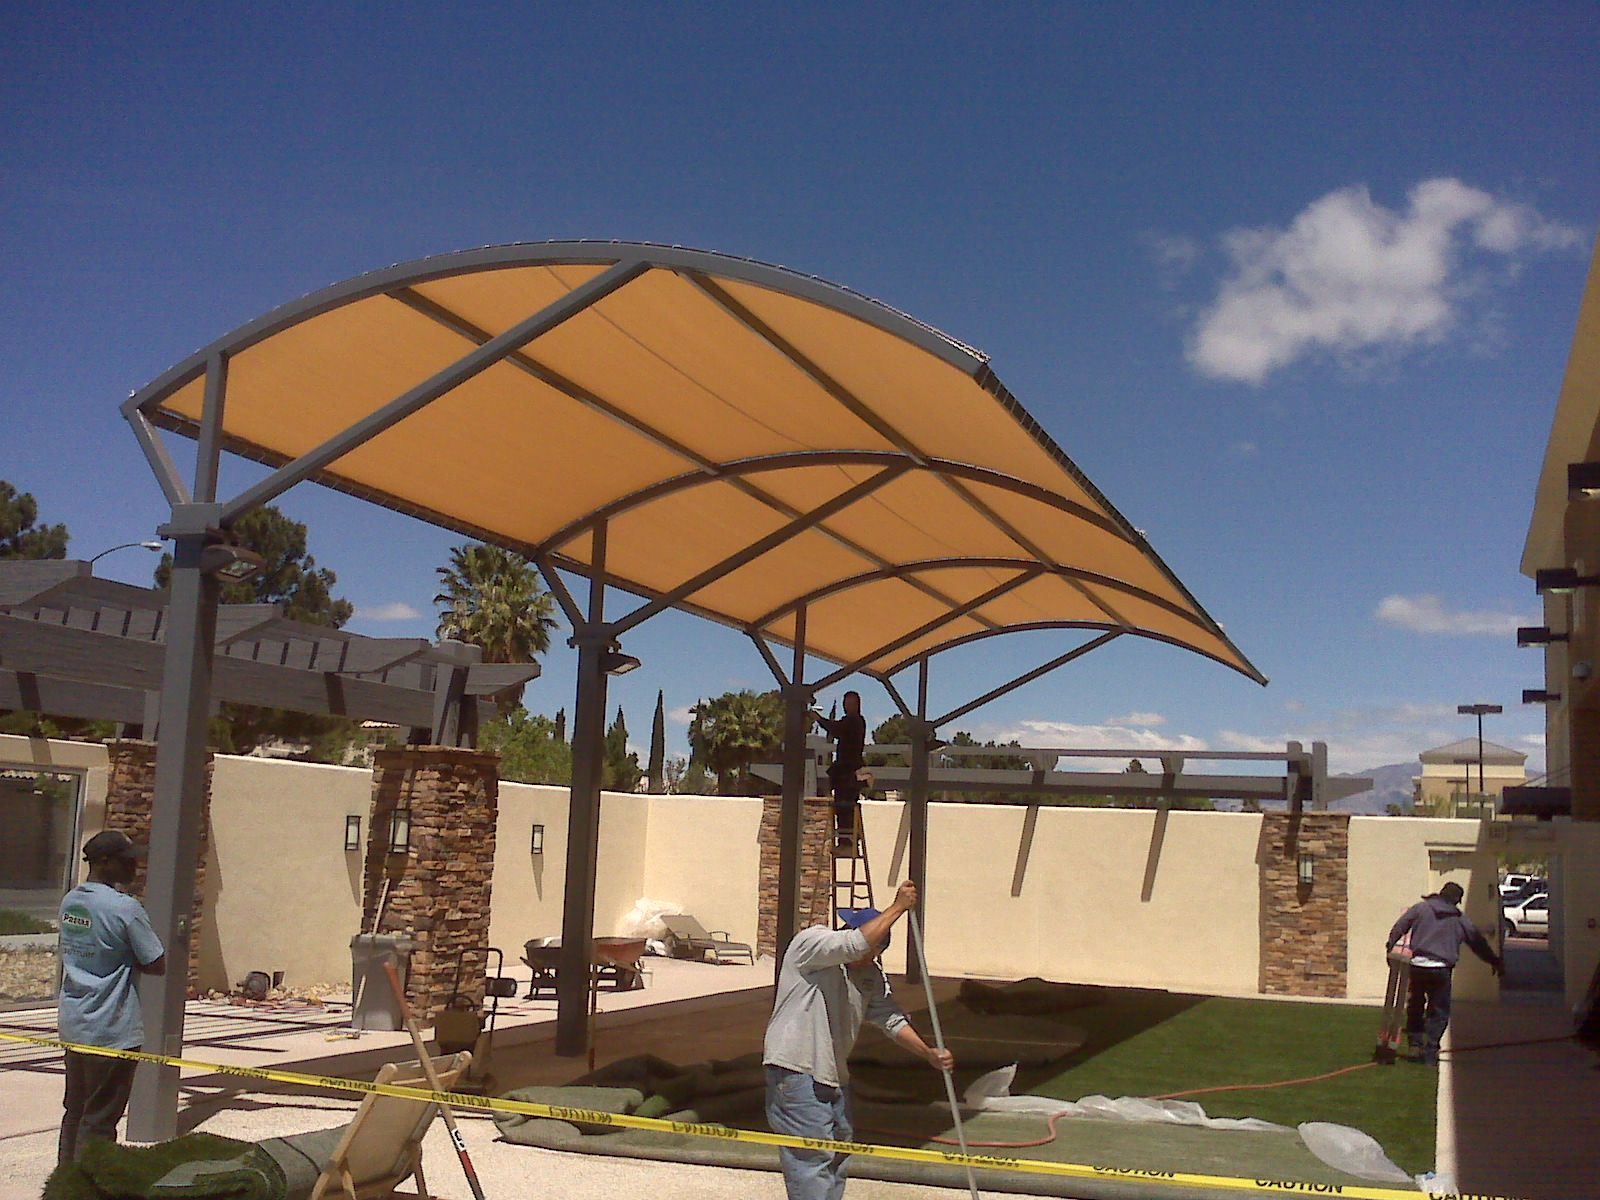 Commercial Outdoor Shade Structures Outside Shade Structures Yard Furniture And Patio In Images Shade Structure Outdoor Shade Yard Furniture